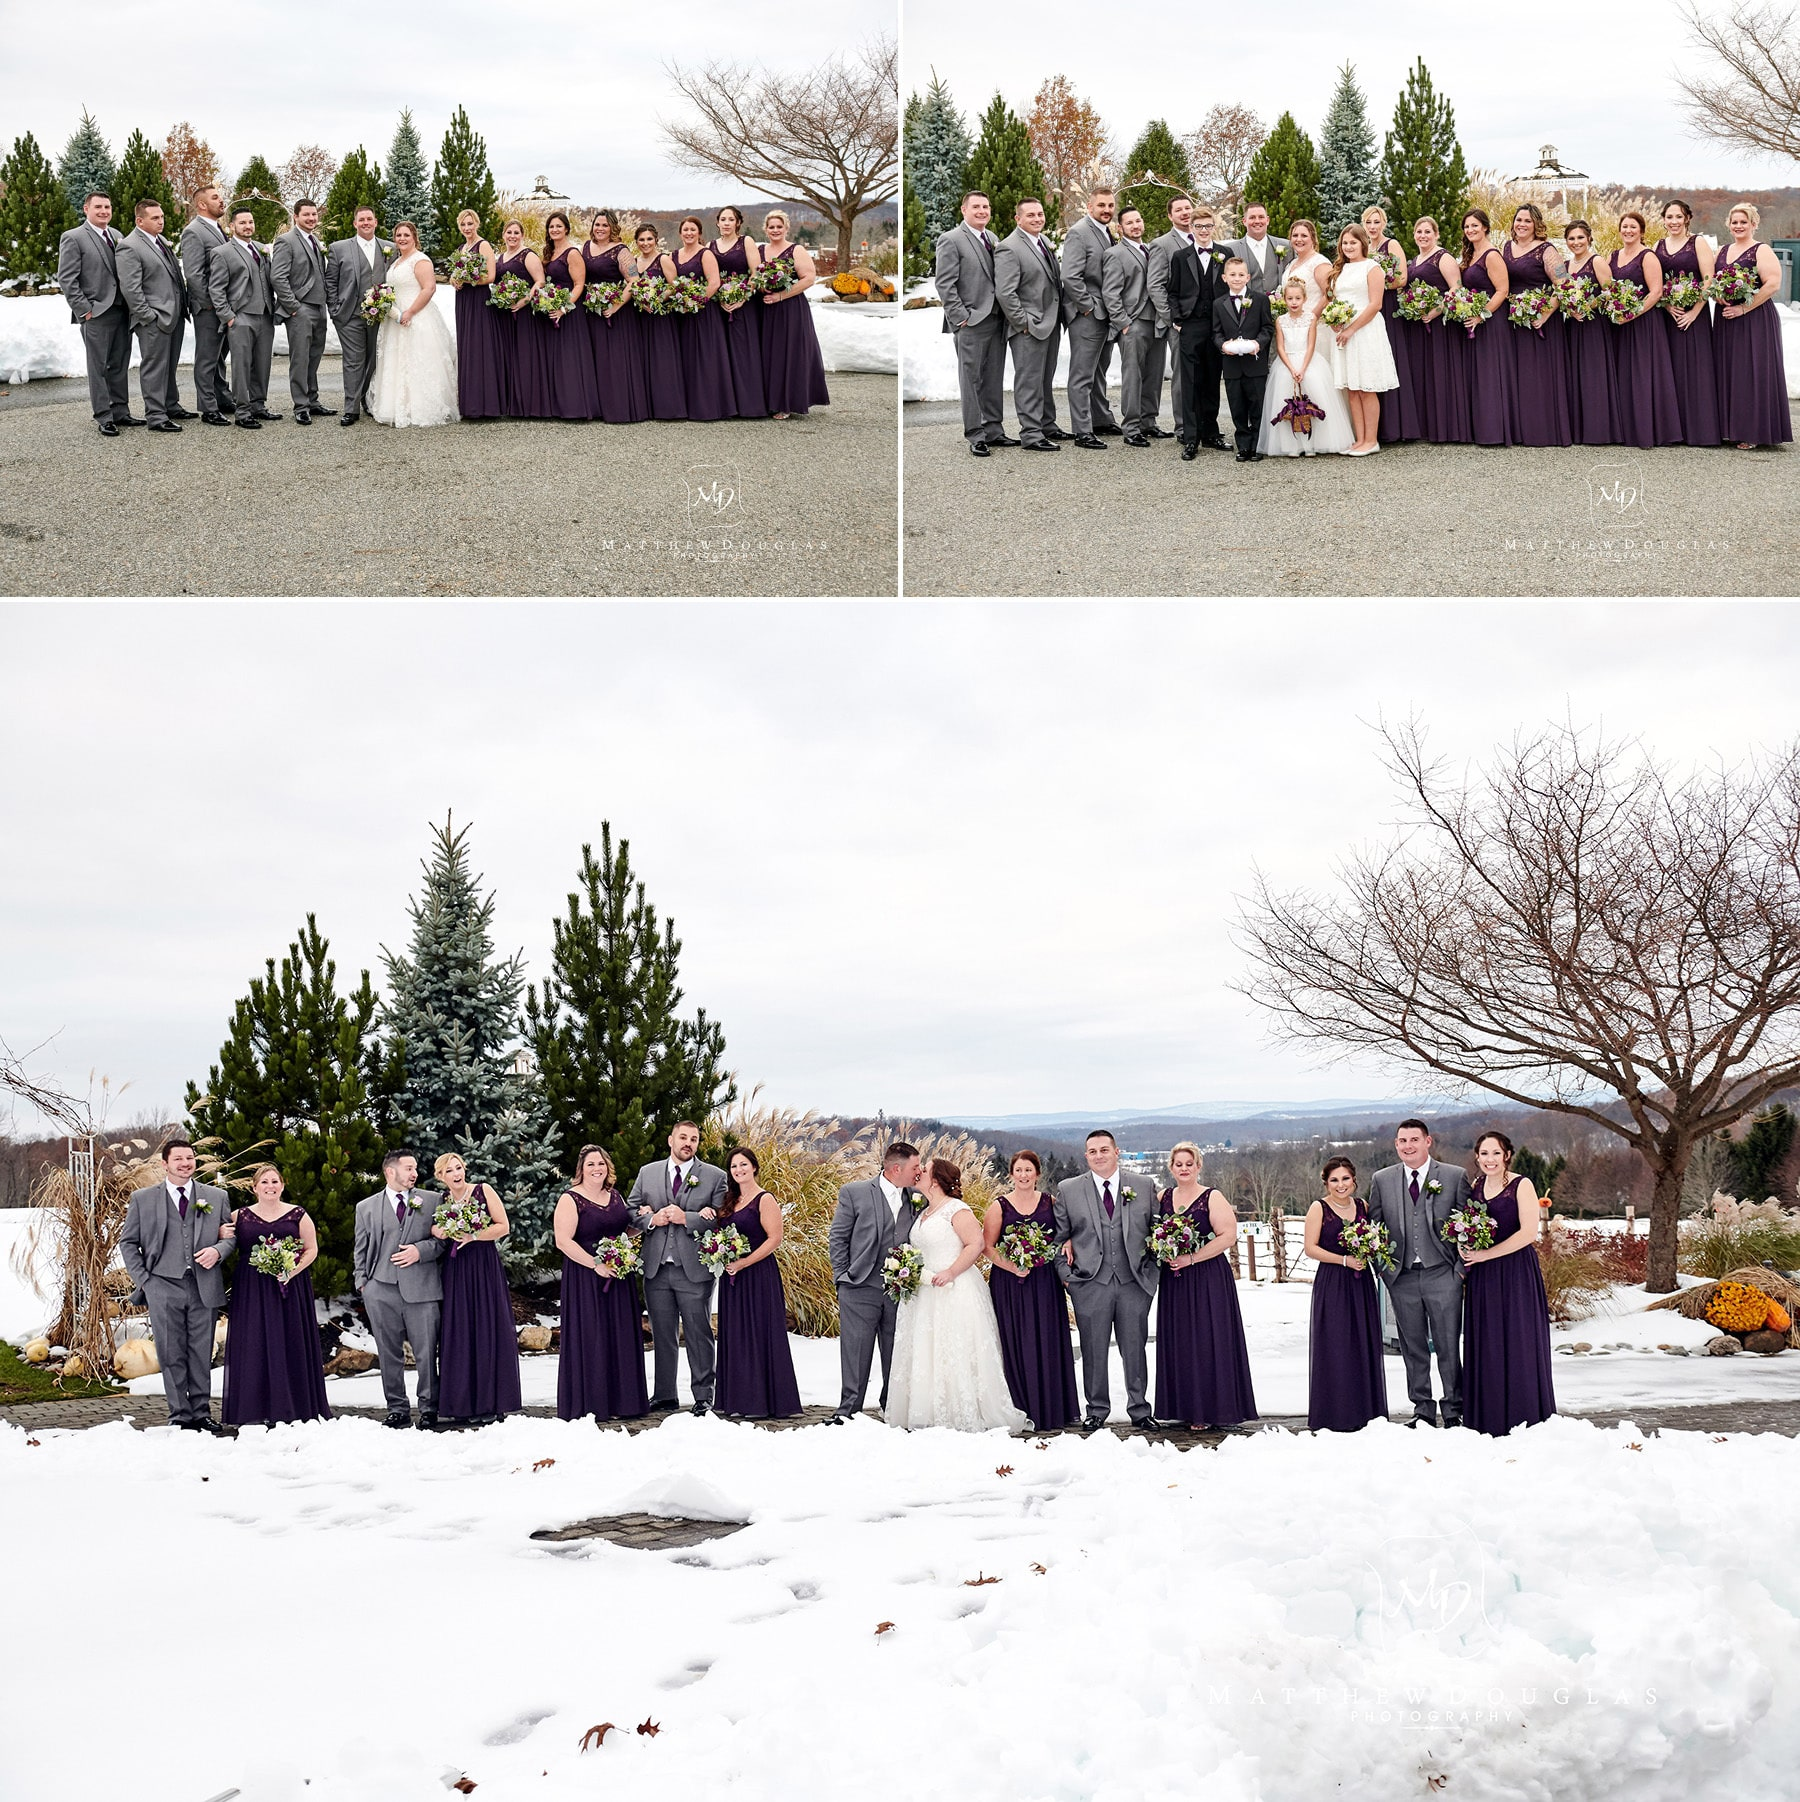 bridal party photo in the snow at Skyview Golf club